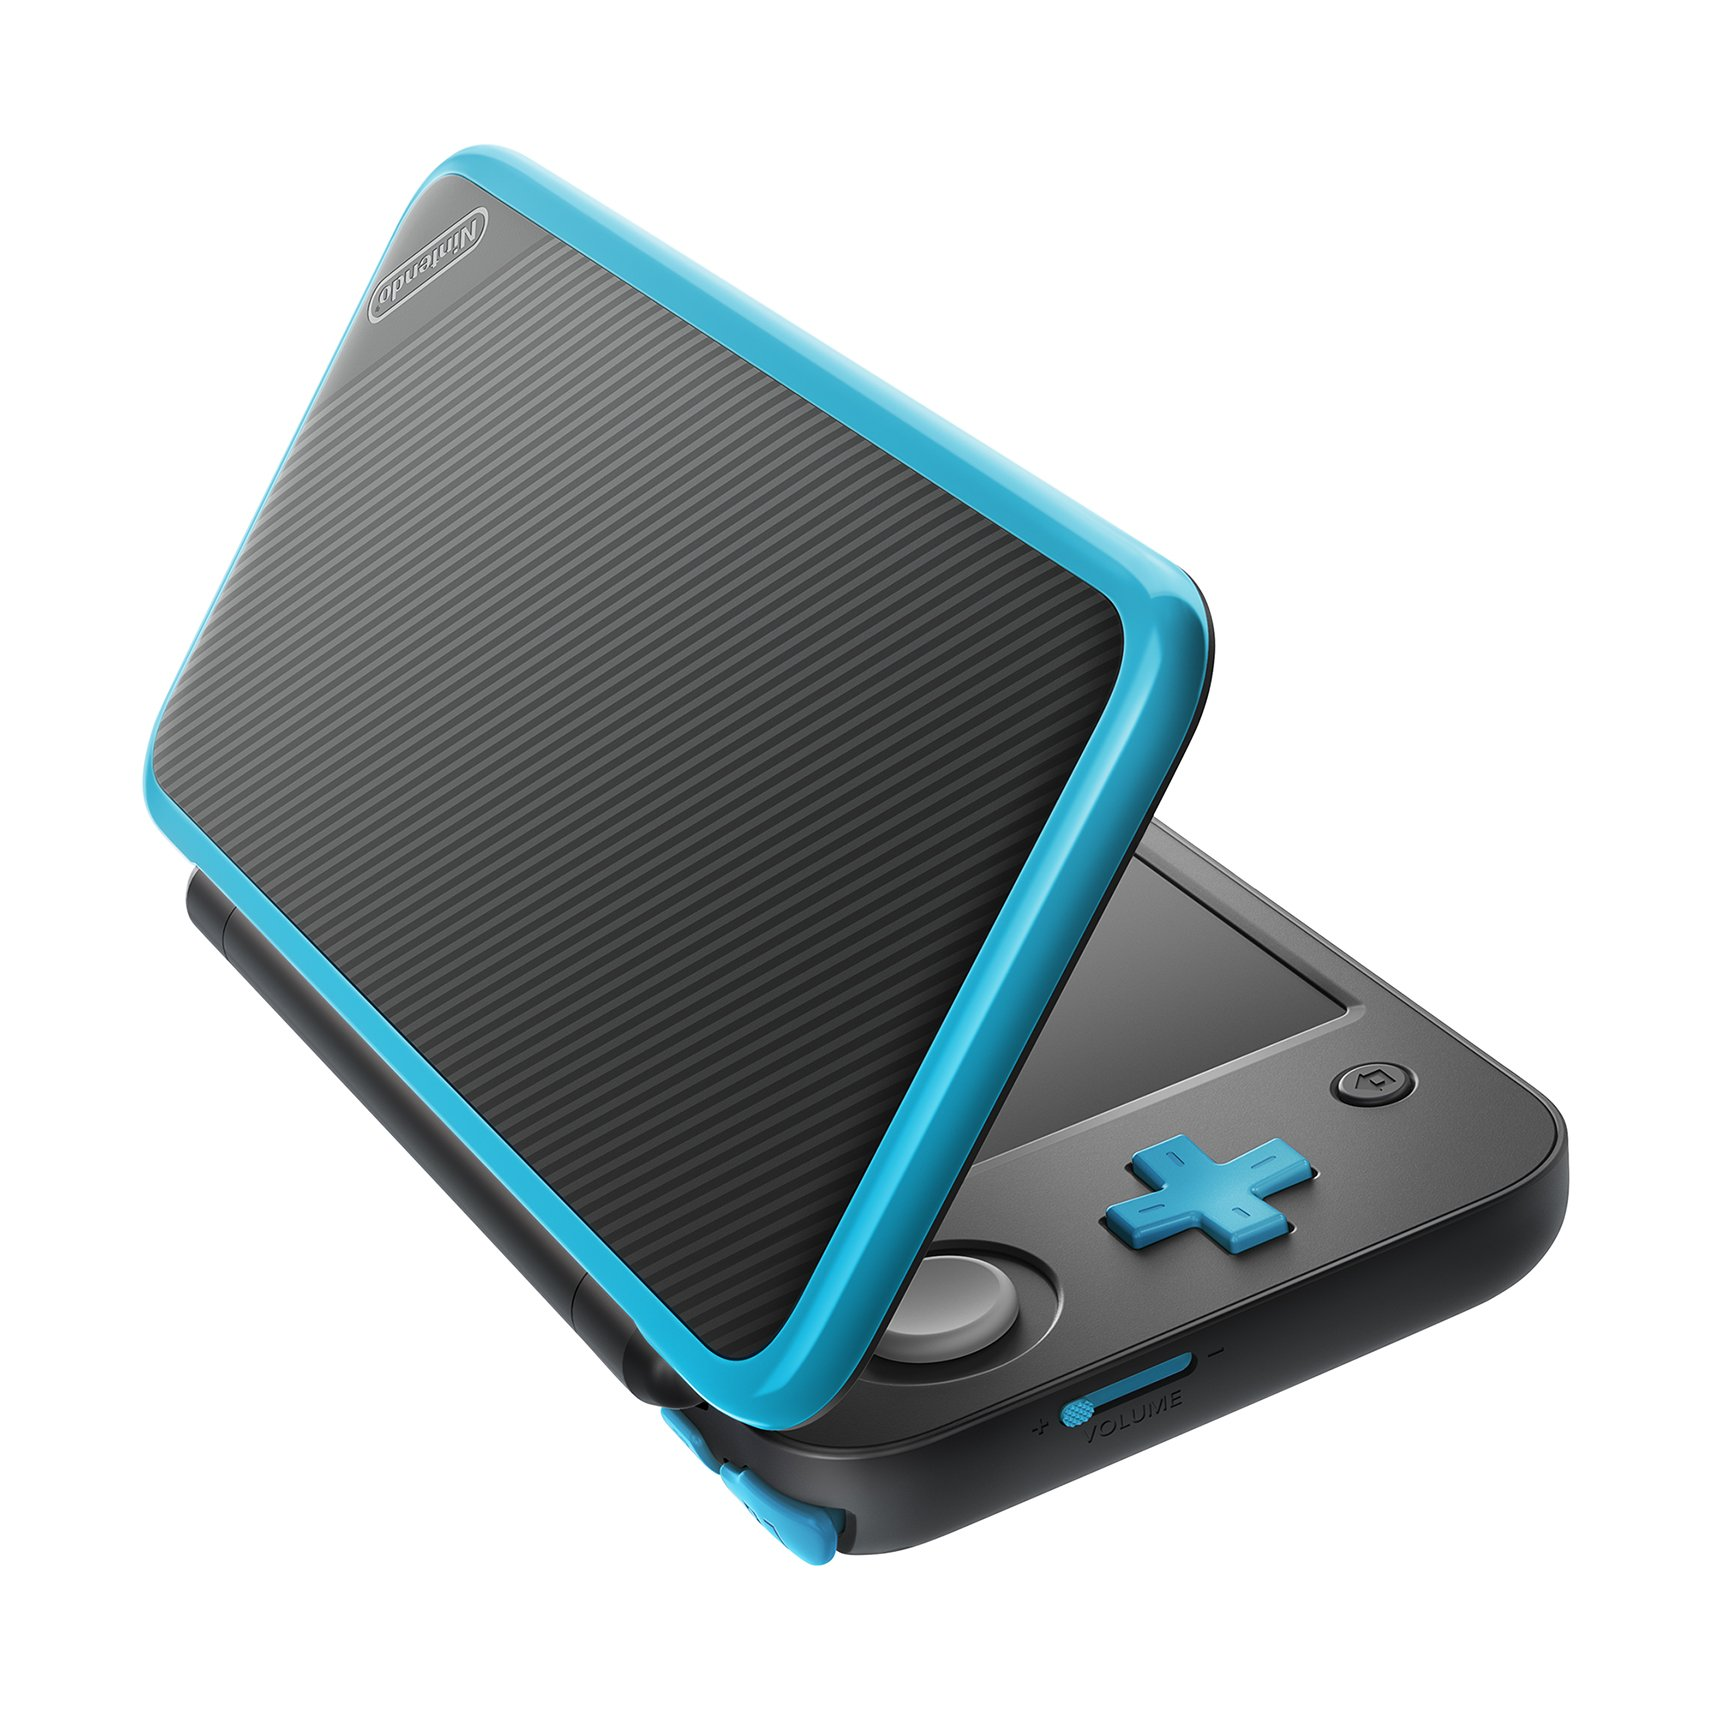 Nintendo New 2DS XL - Black + Turquoise by Nintendo (Image #7)